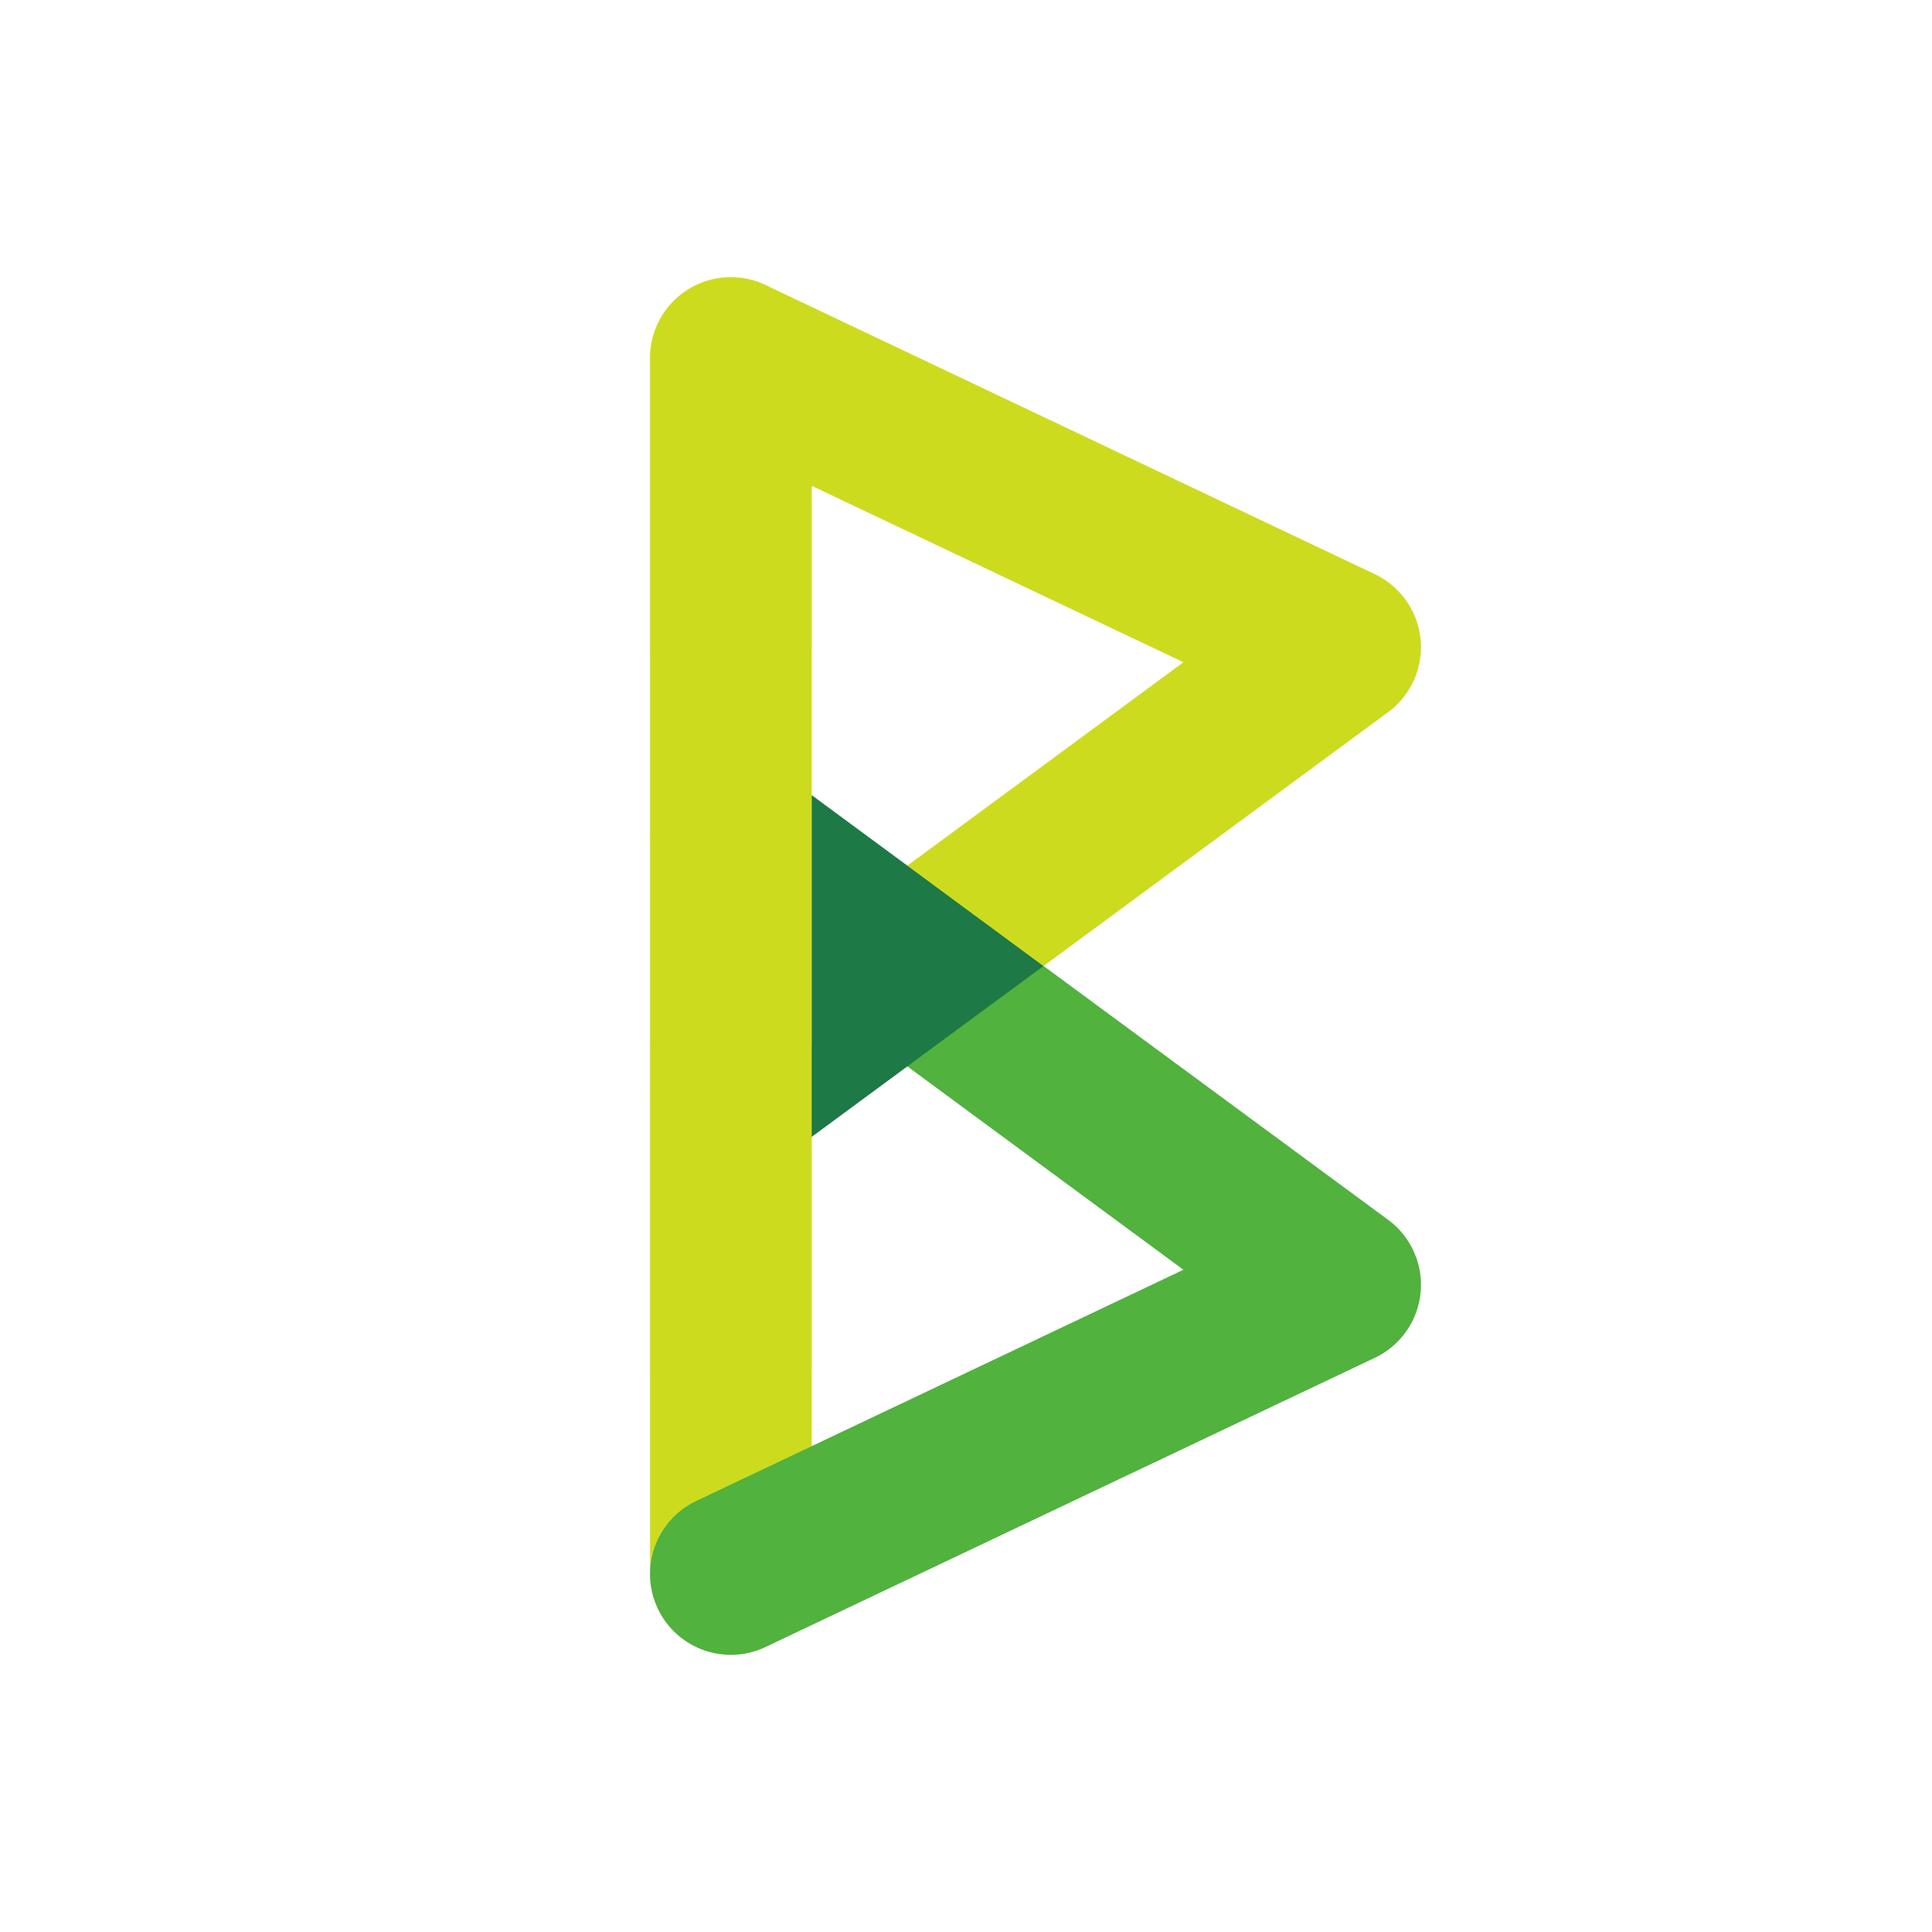 English image file logo for FOSS BTCPayServer a decentralized free cryptocurrency payment processing software platform. The image describes a Green Letter